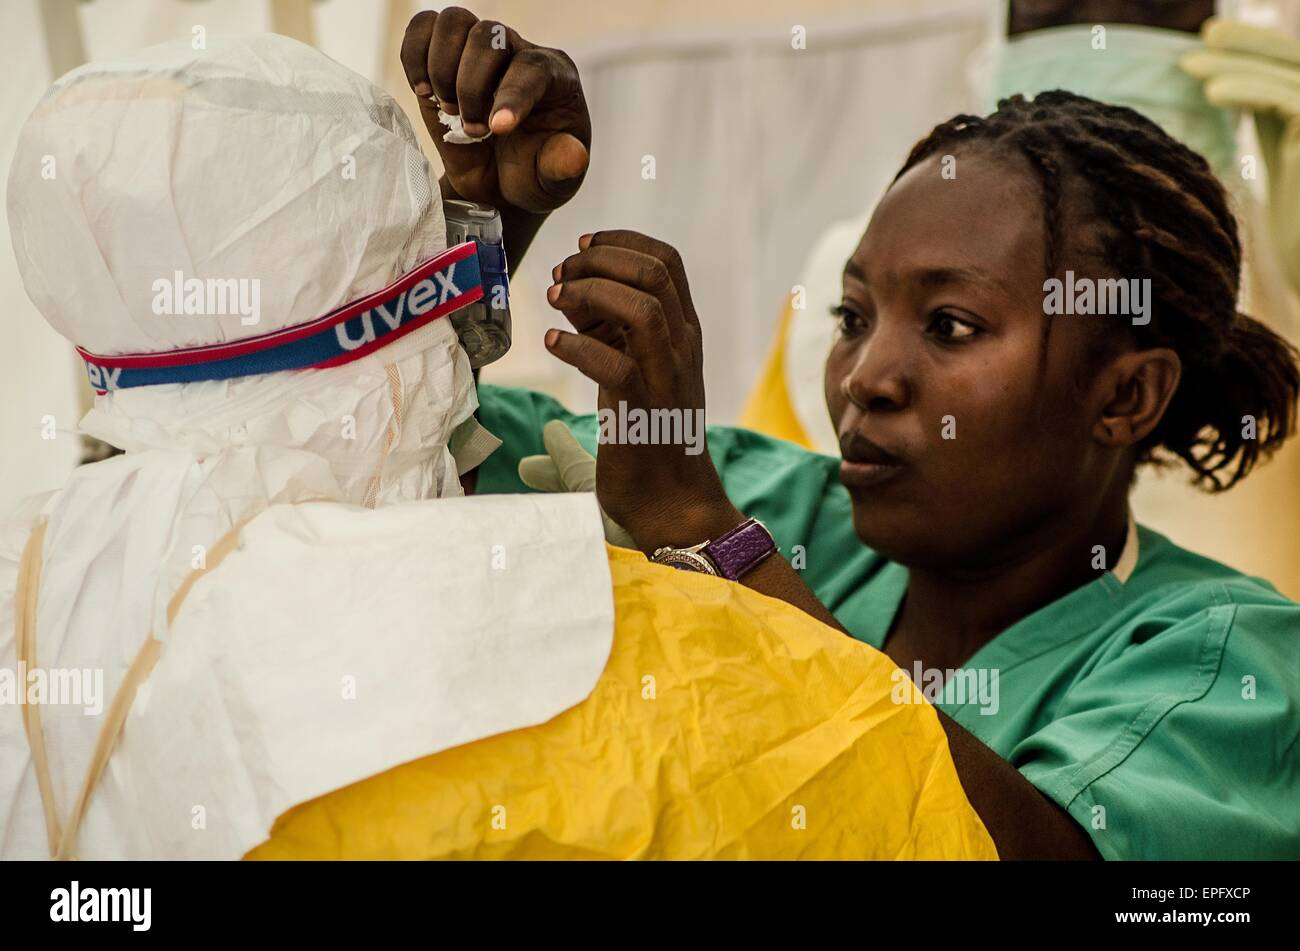 A nurse helps another staff member to put on PPE at a MSF Ebola treatment center in kailahun, Sierra Leone. - Stock Image